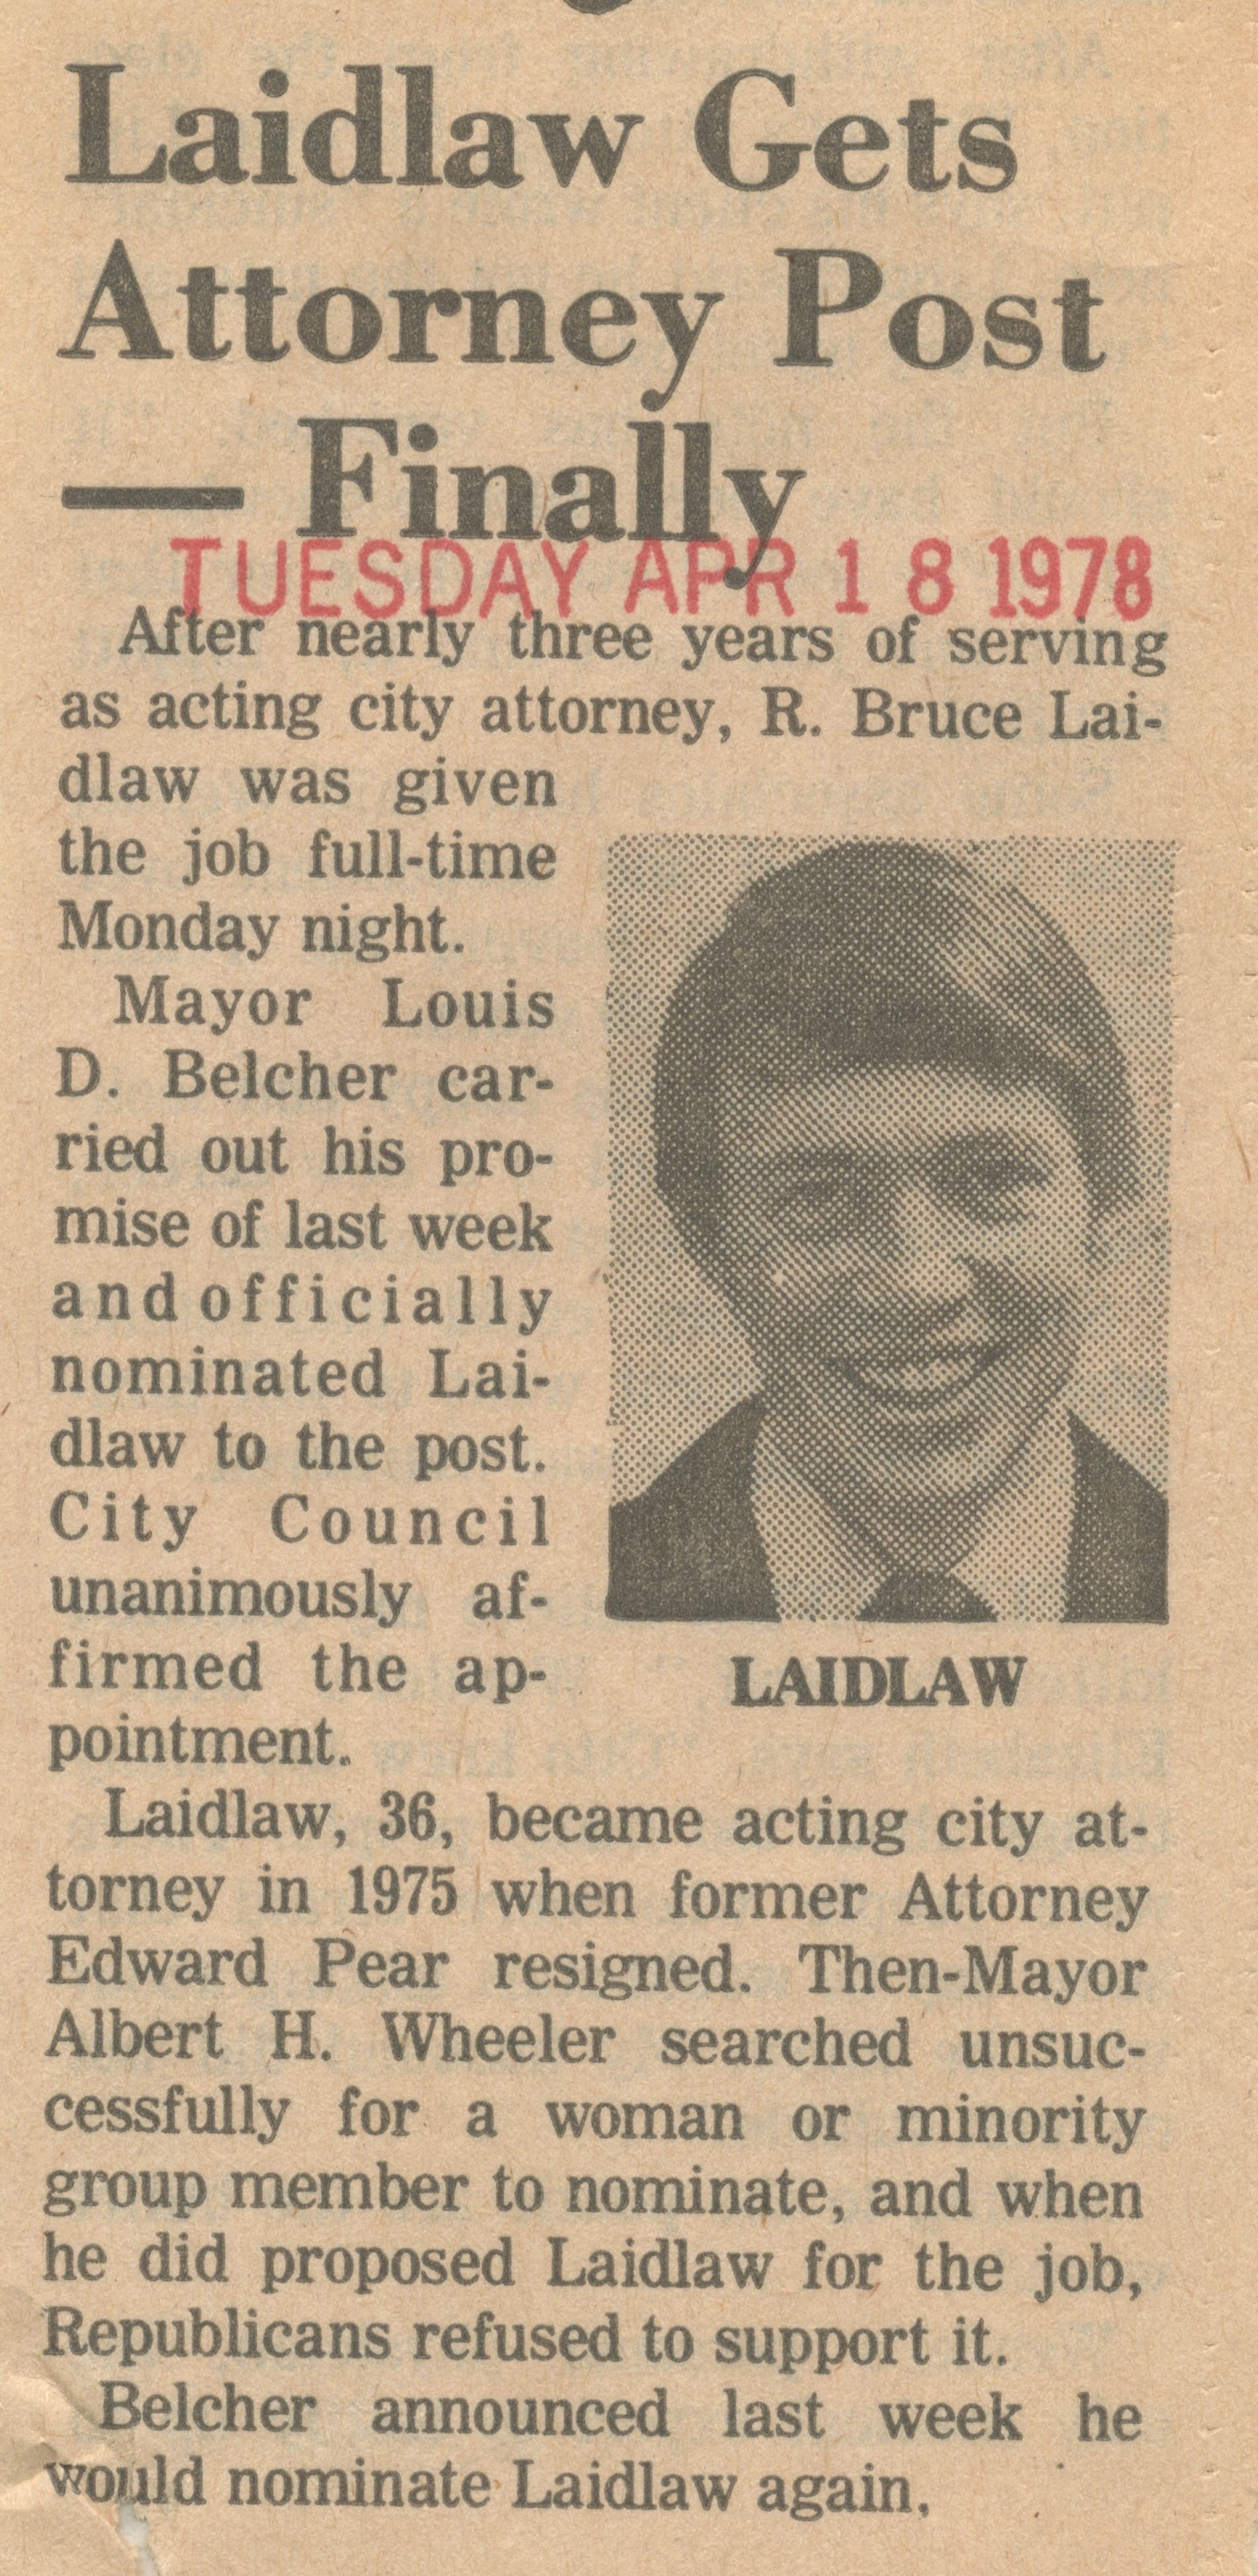 Laidlaw Gets Attorney Post - Finally image